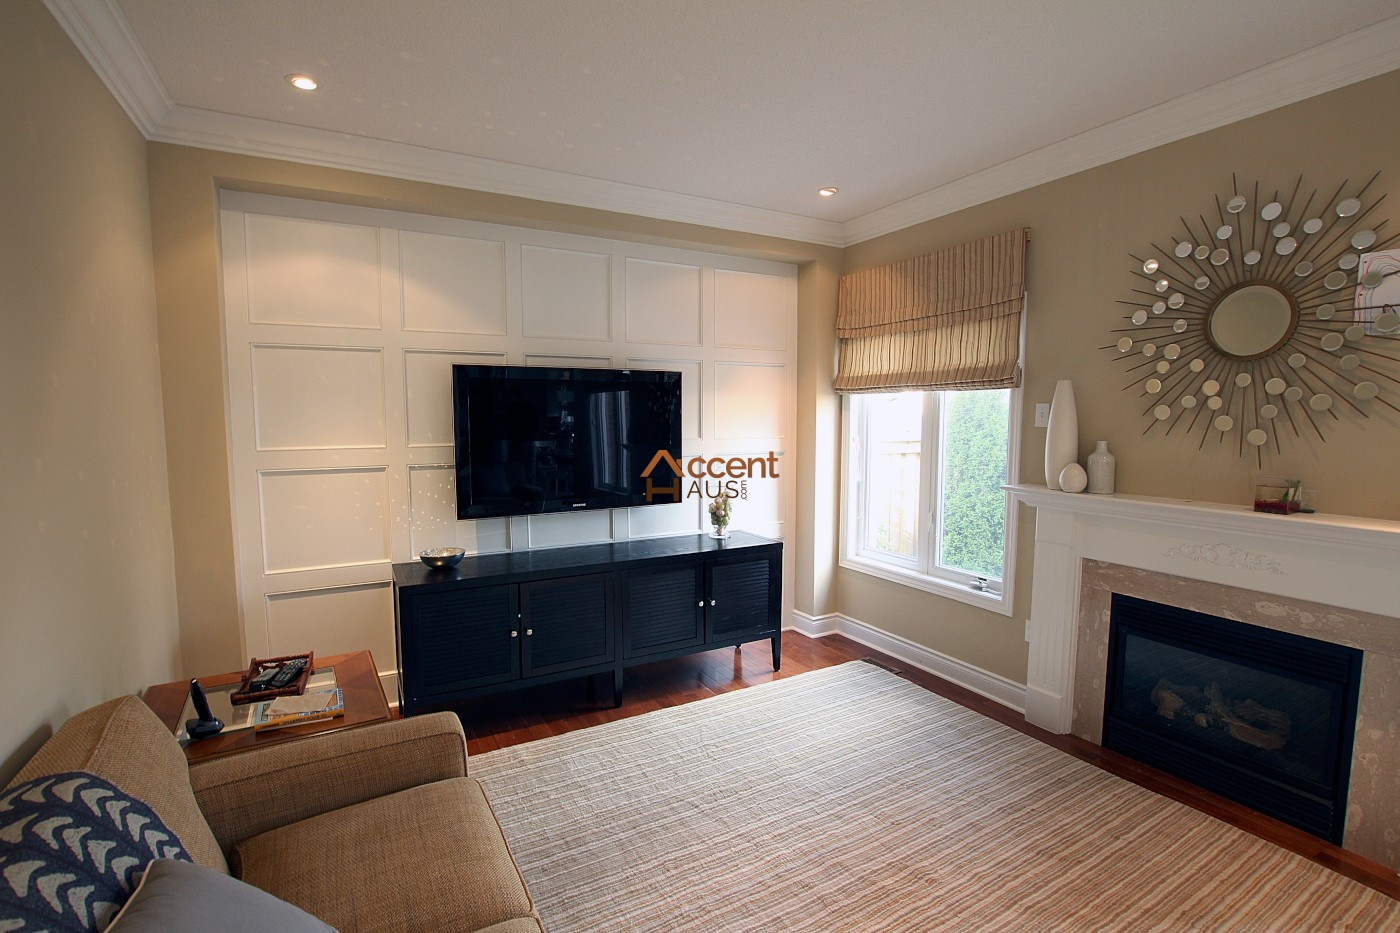 Wall Paneling Amp Wainscoting Accent Haus Custom